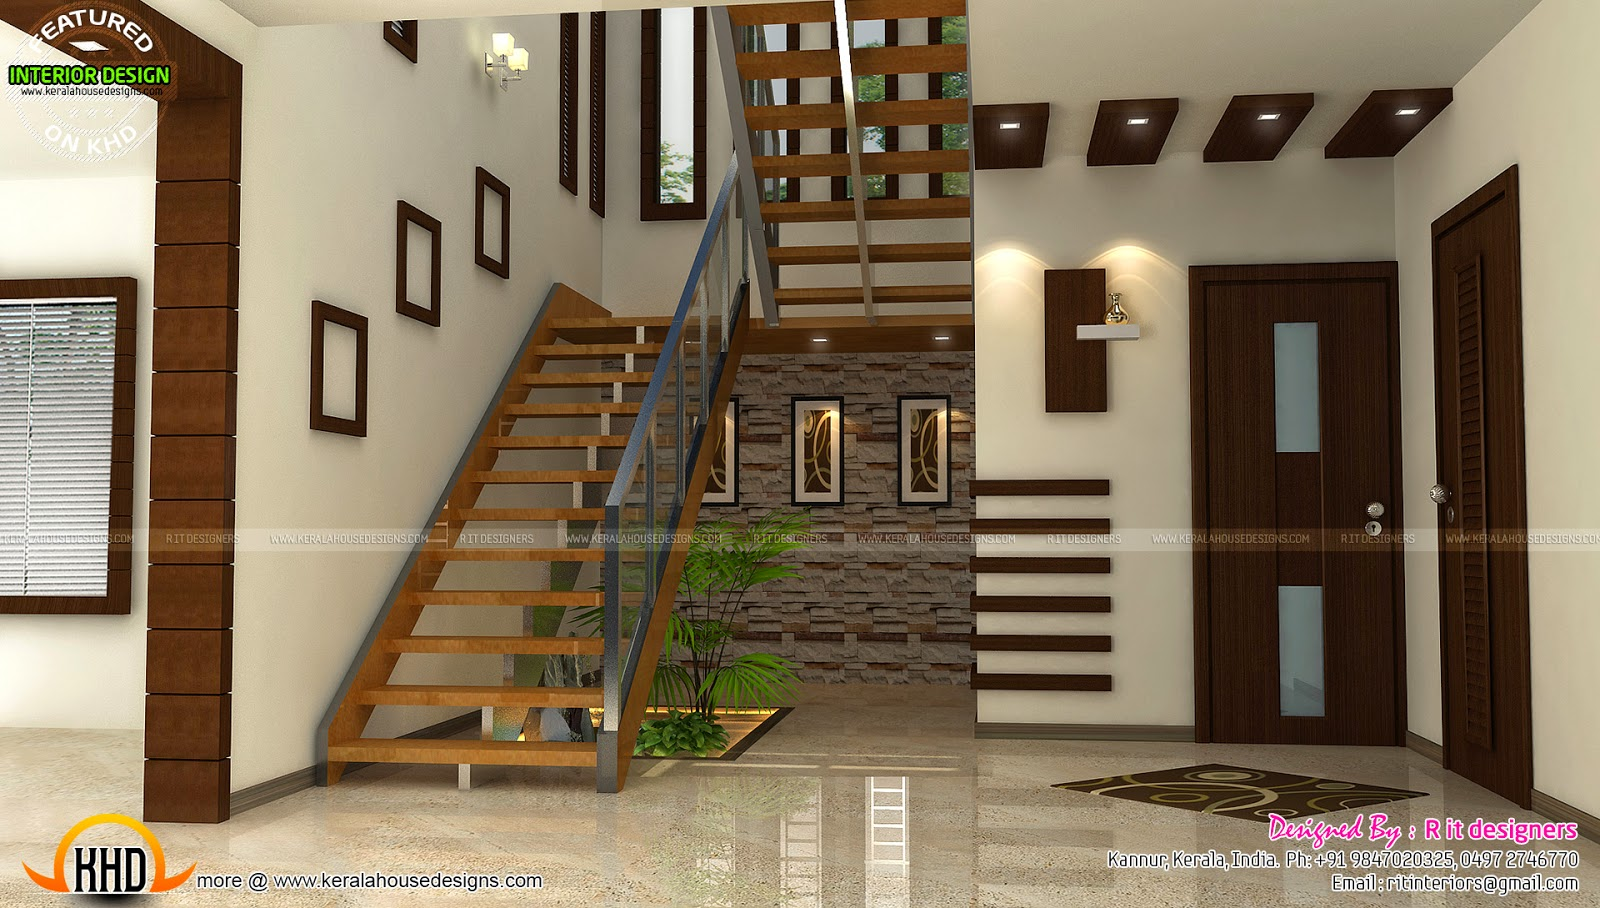 Staircase bedroom dining interiors kerala home design for Different interior designs of houses